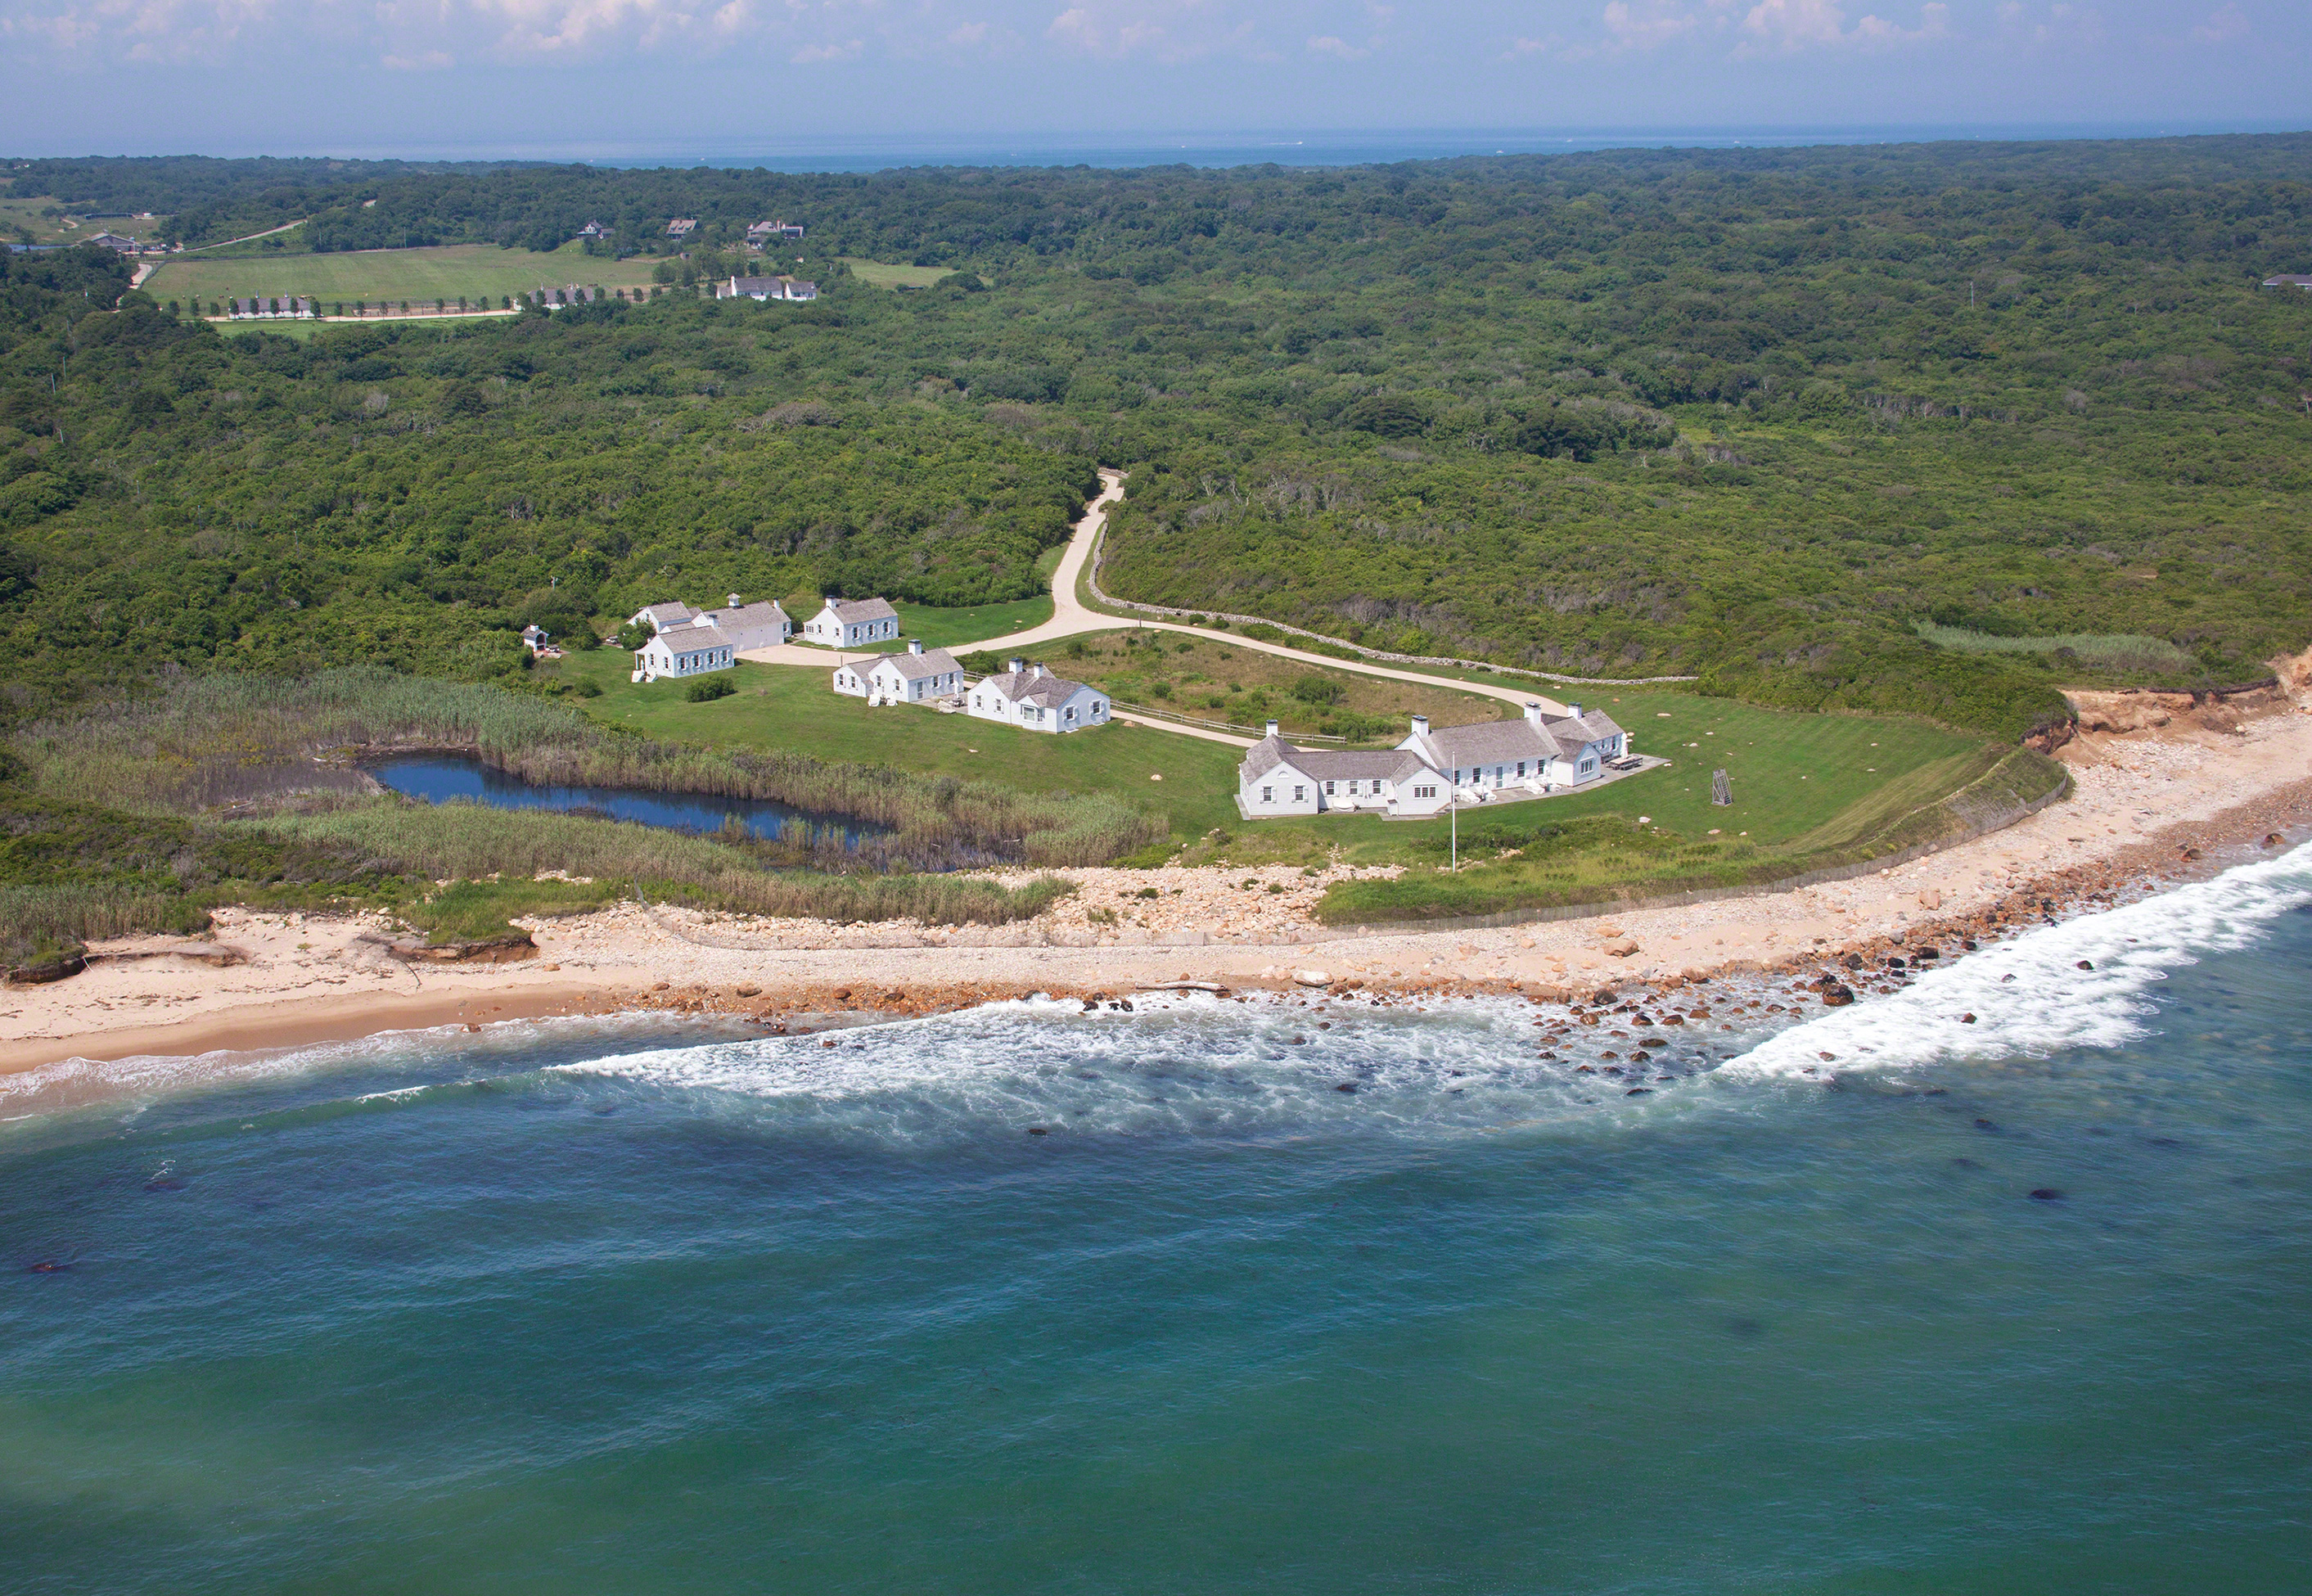 The 5.7-acre Montauk estate, previously owned by Andy Warhol and J.Crew CEO Mickey Drexler, was sold for $50 million.